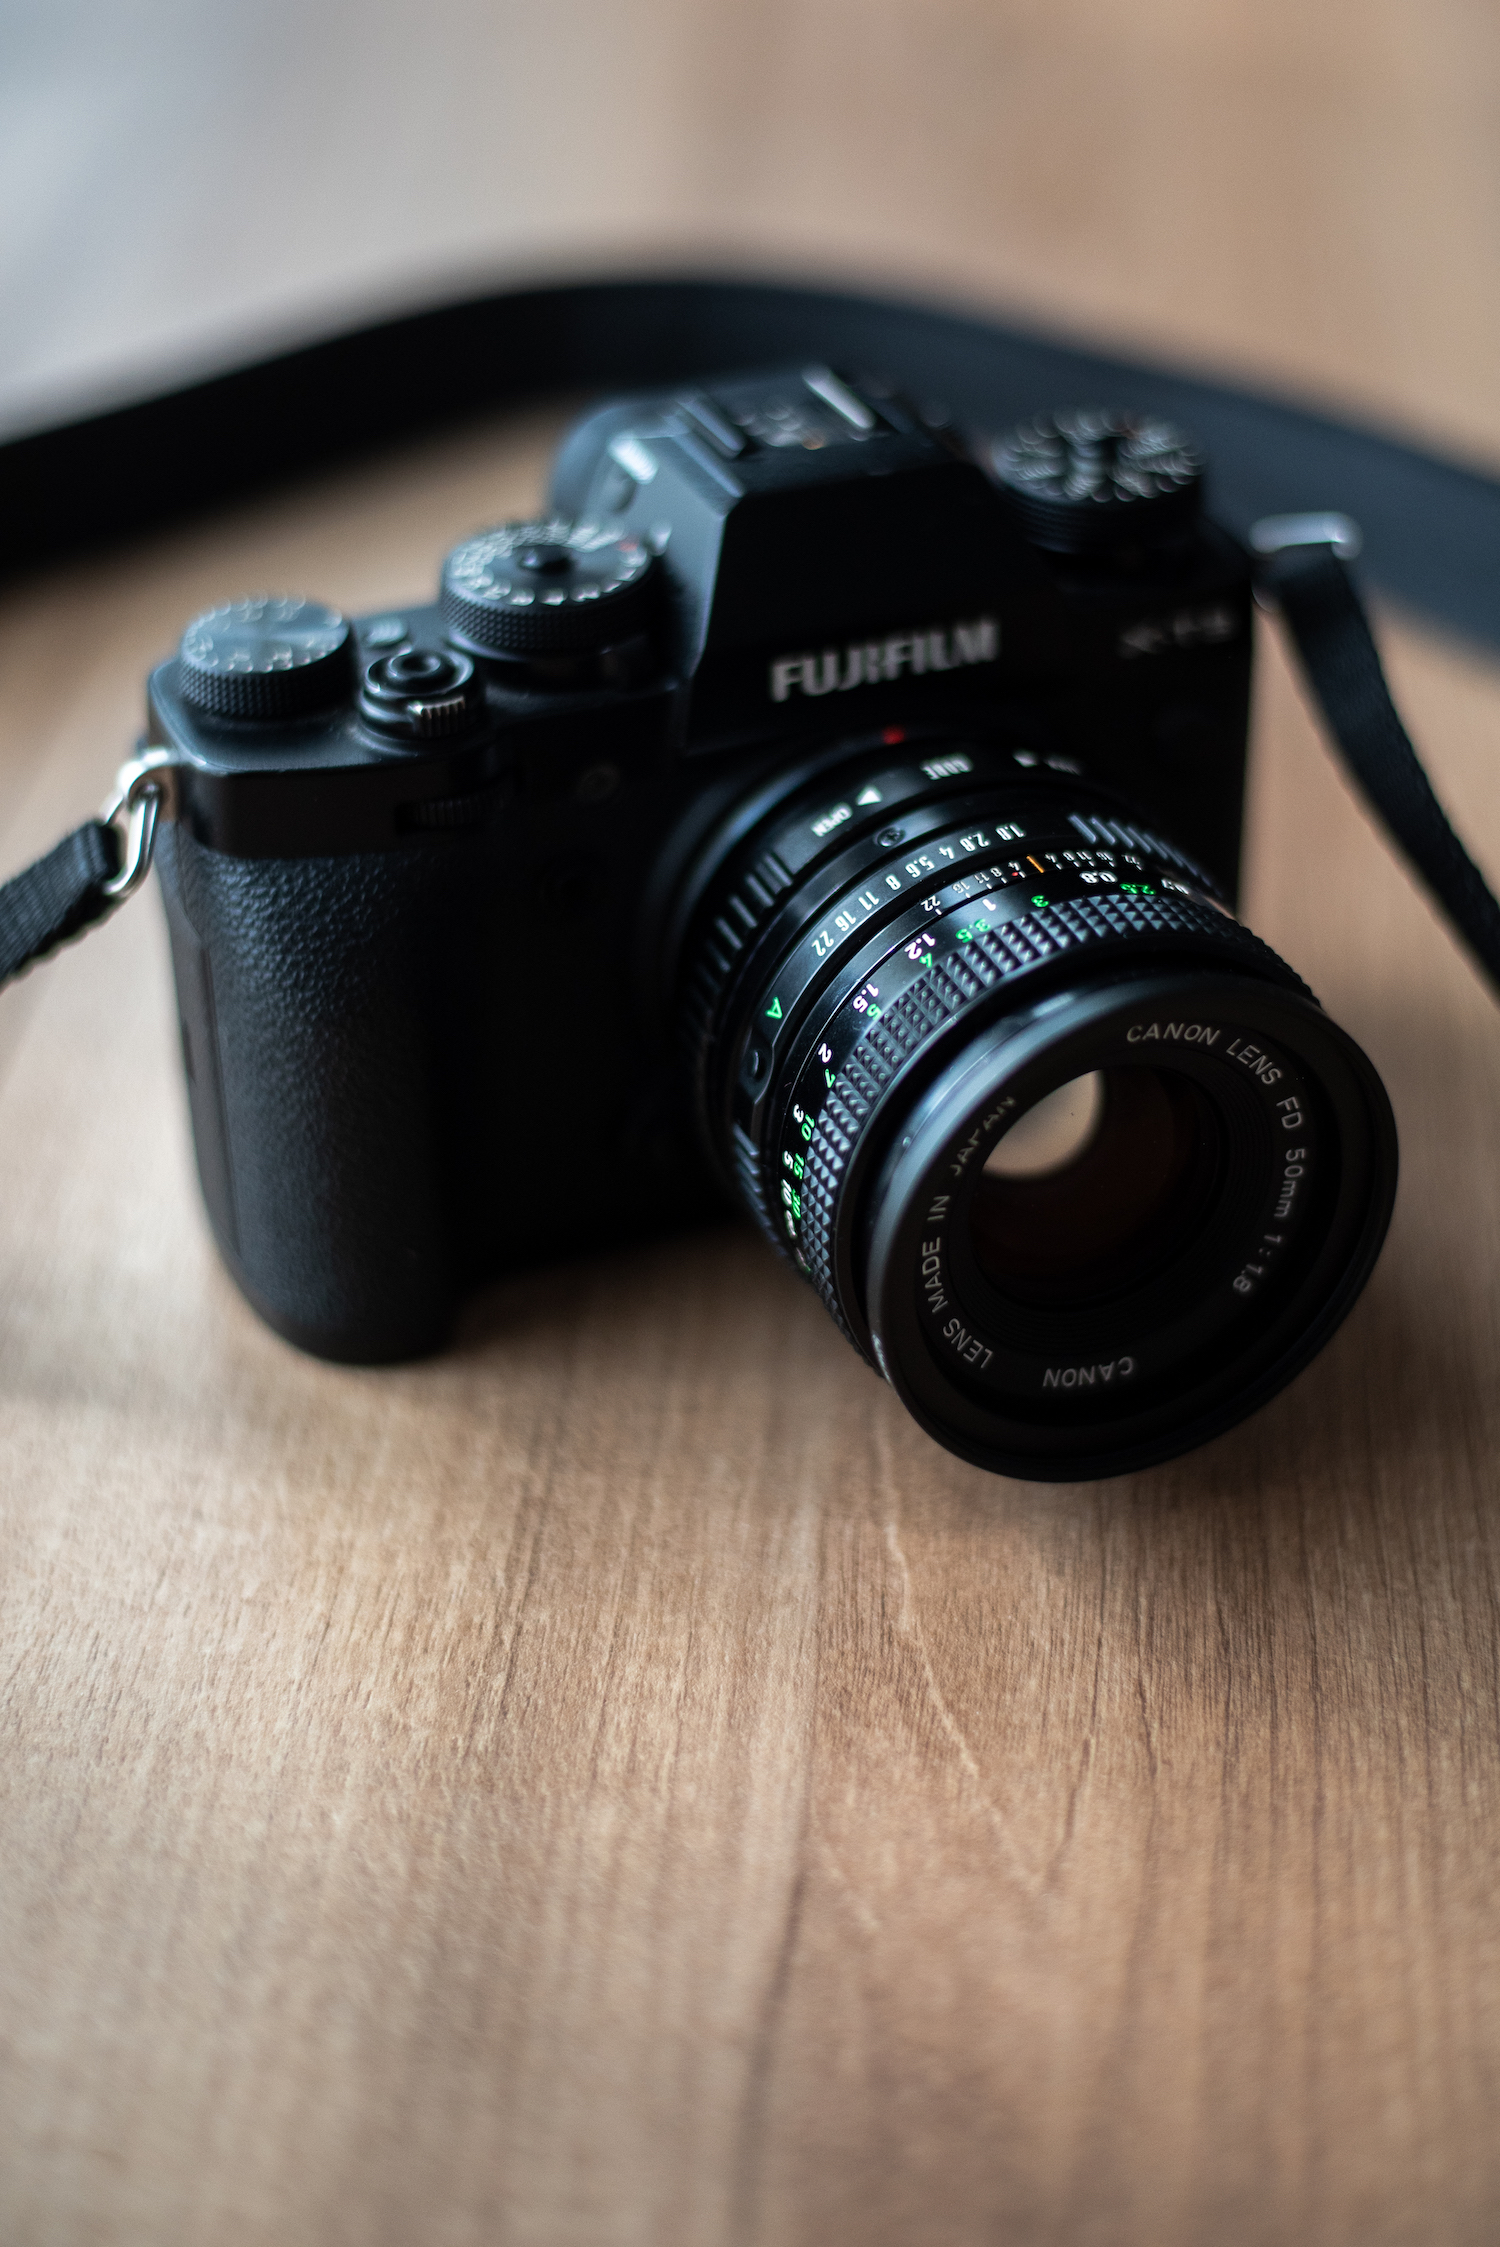 Vintage Canon FD 50mm with Fujifilm XT3 - by Ben Holbrook from DriftwoodJournals.com6